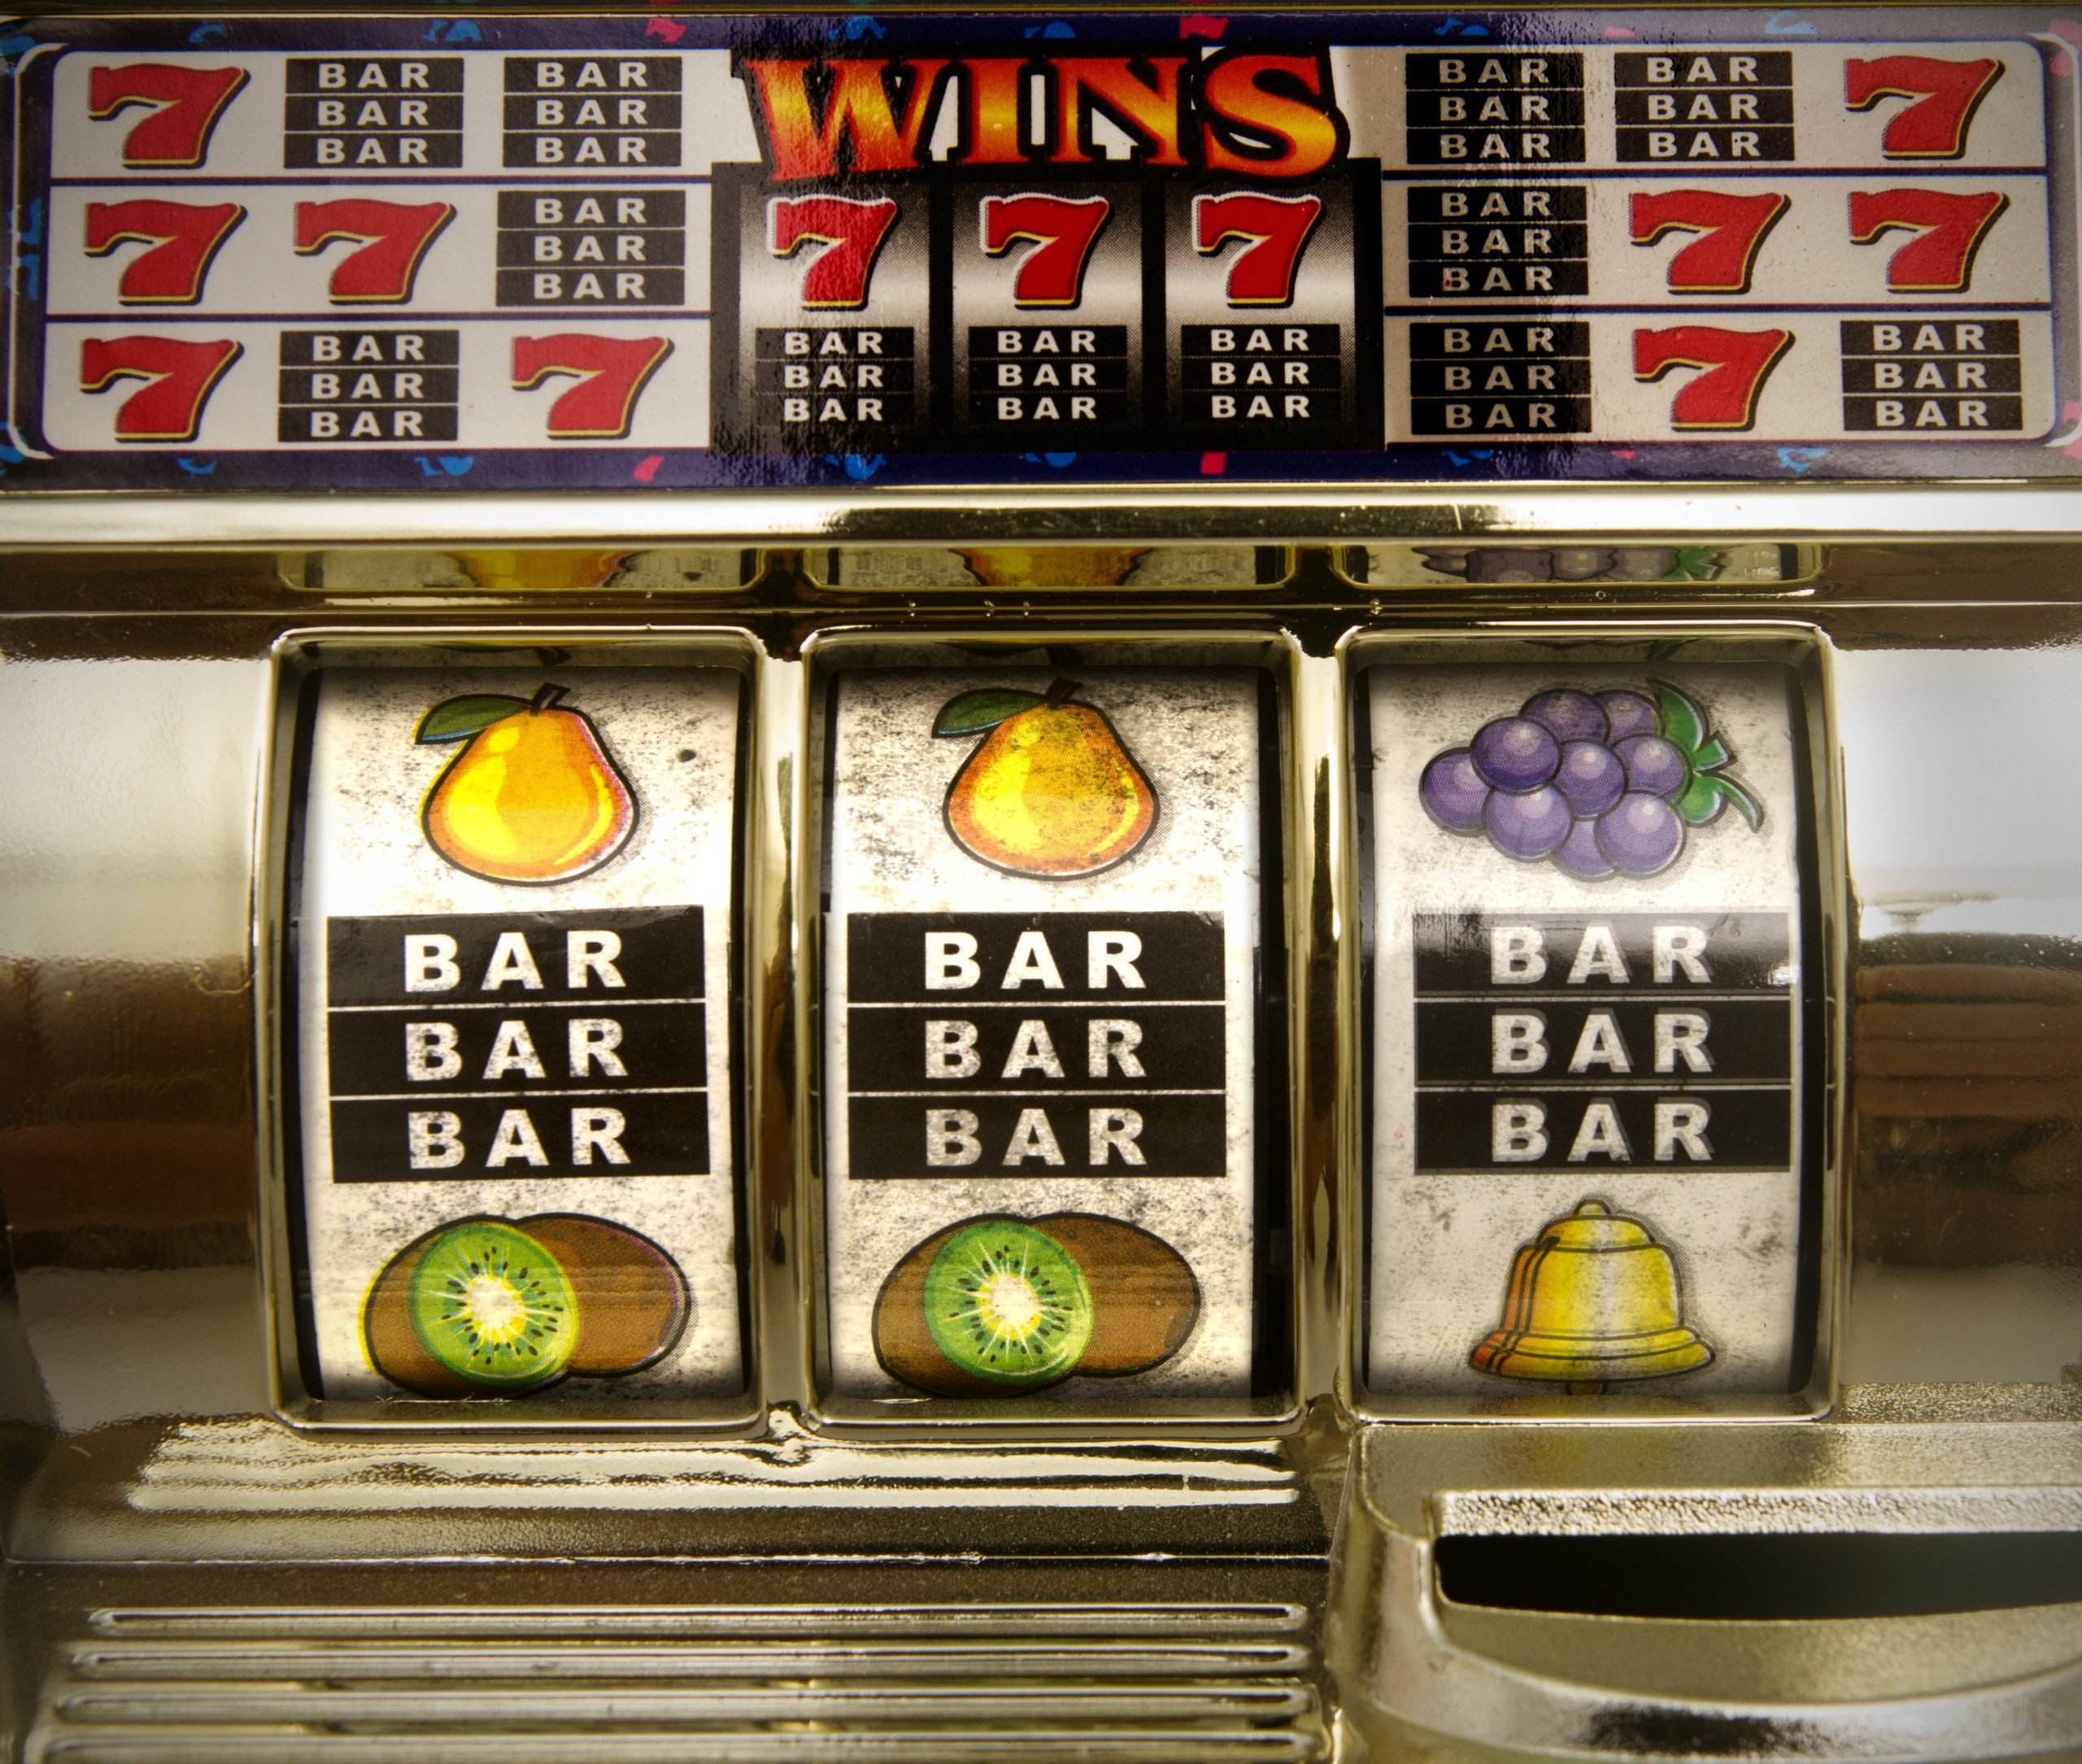 Where did the BAR on slot machines come from?